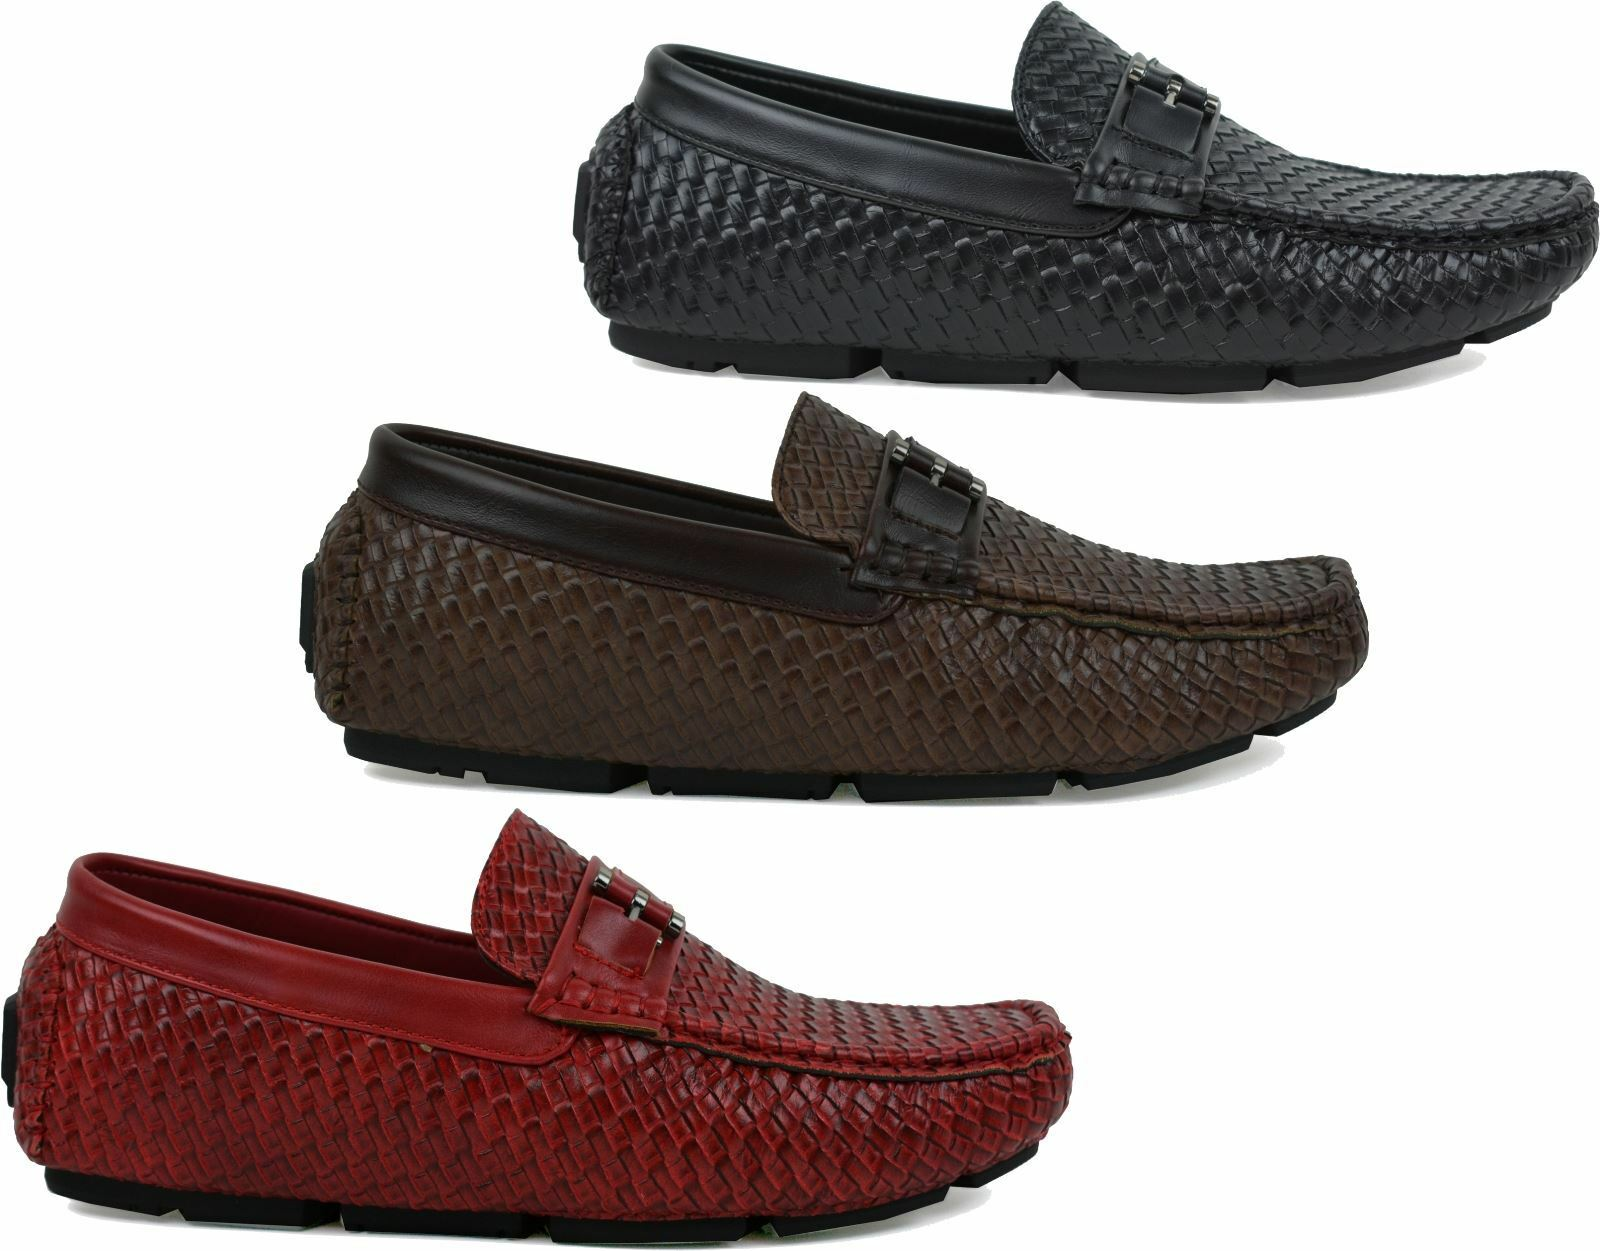 MENS FLAT CASUAL FLAT SIZES SUMMER SLIP ON UK SIZES FLAT 6-11 b51ac0